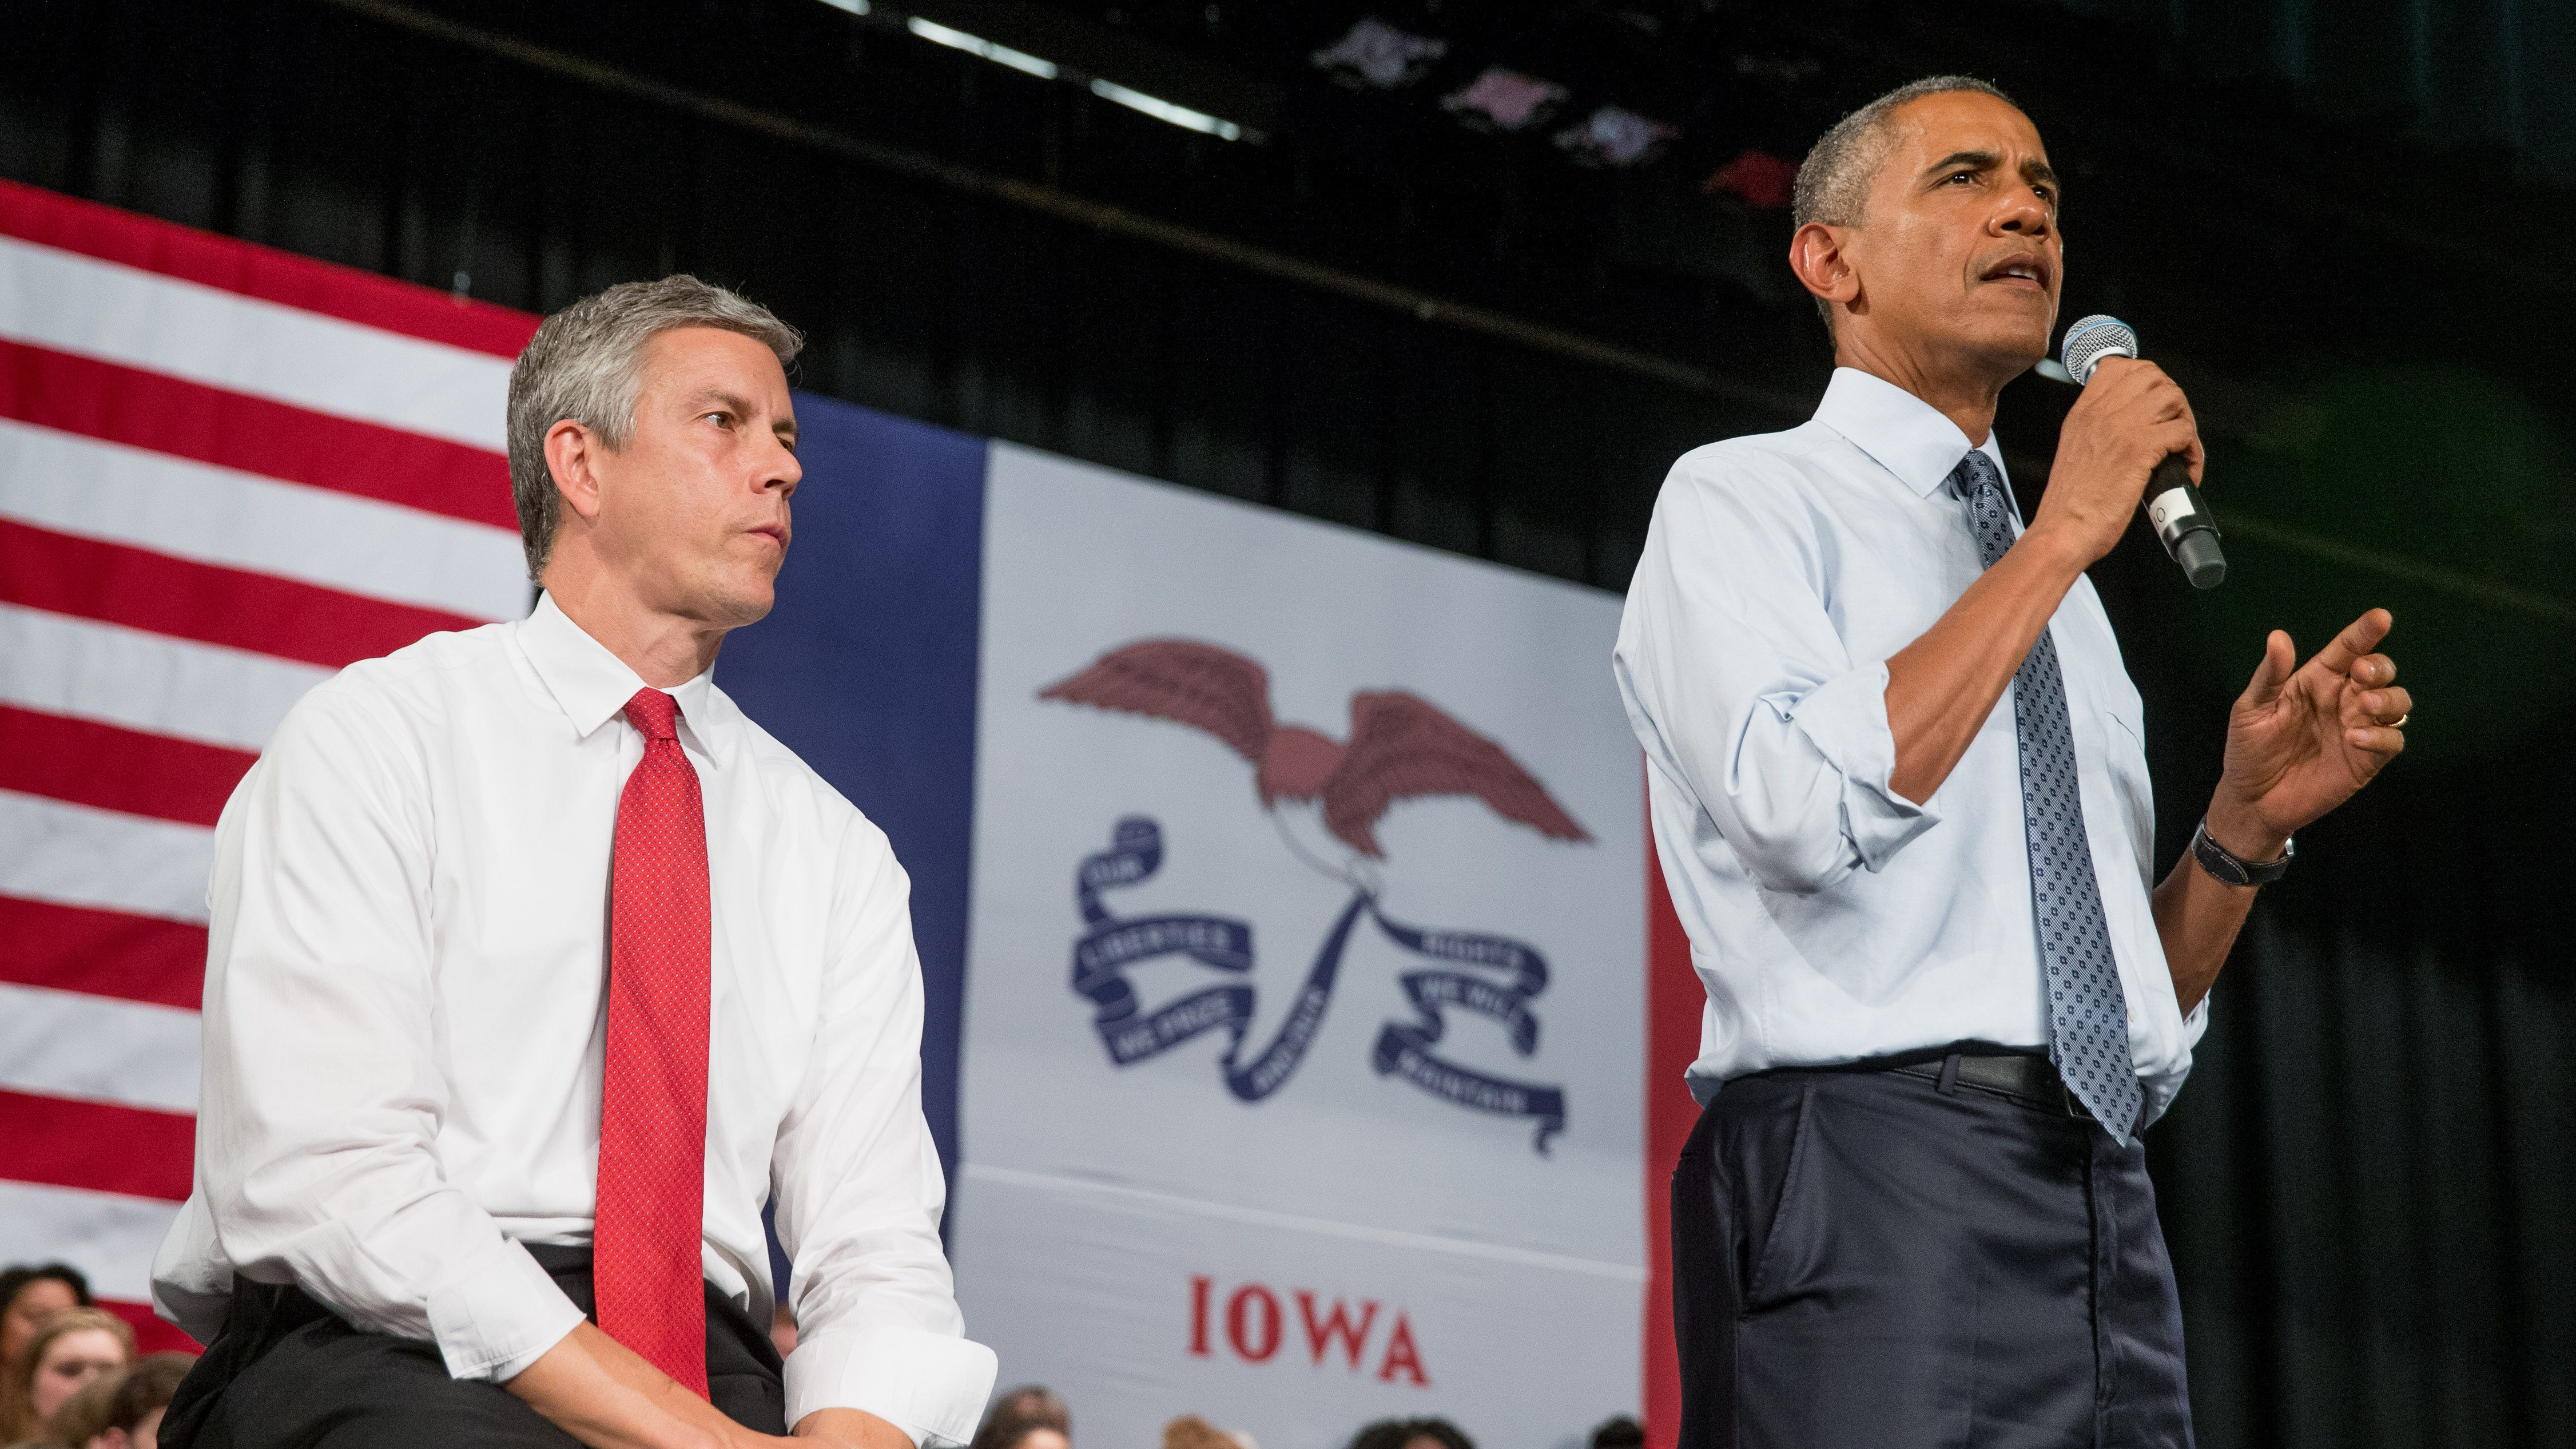 President Barack Obama, accompanied by Secretary of Education Arne Duncan, speaks at a town hall with high school juniors, seniors and their parents at North High School in Des Moines, Monday, Sept. 14, 2015, to discuss college access and affordability.